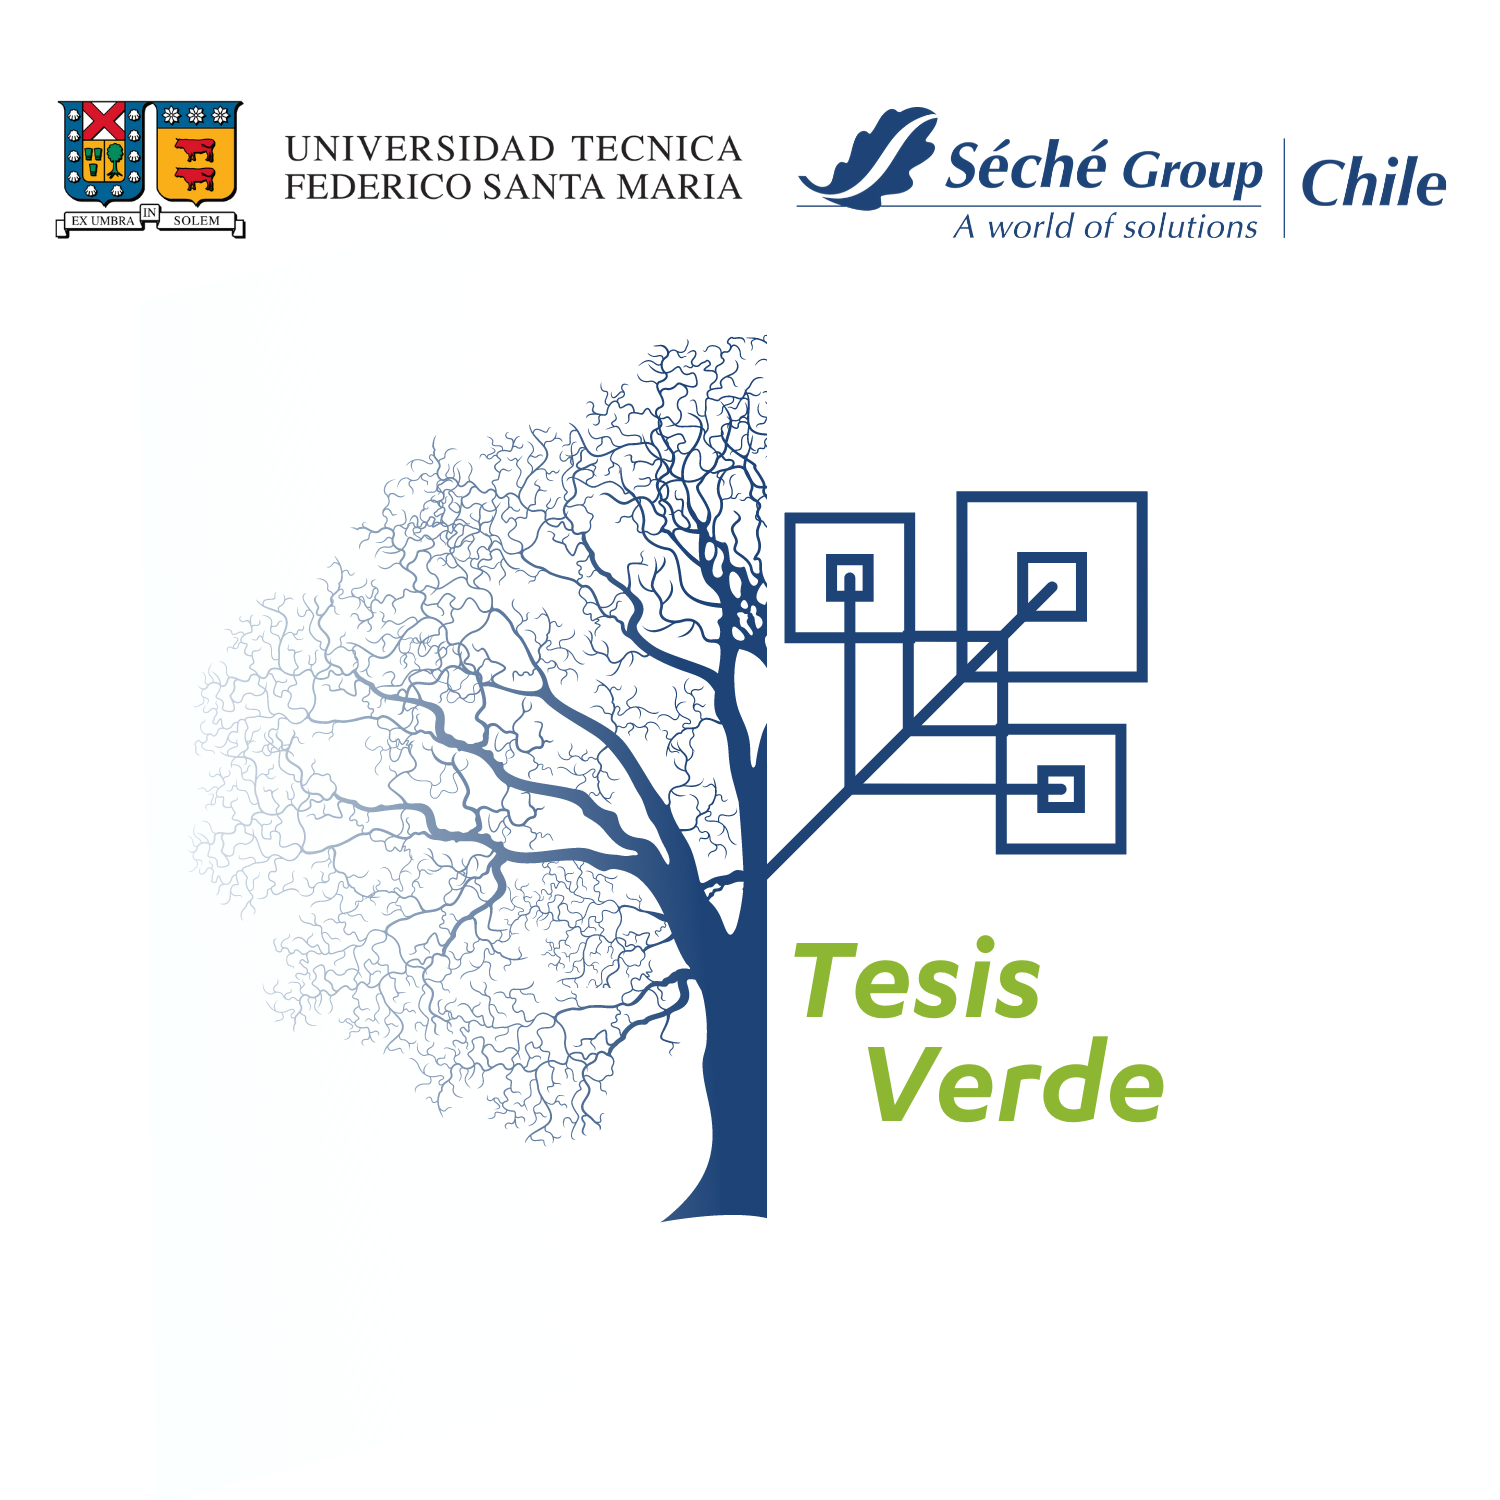 Tesis Verde Seche Group Chile